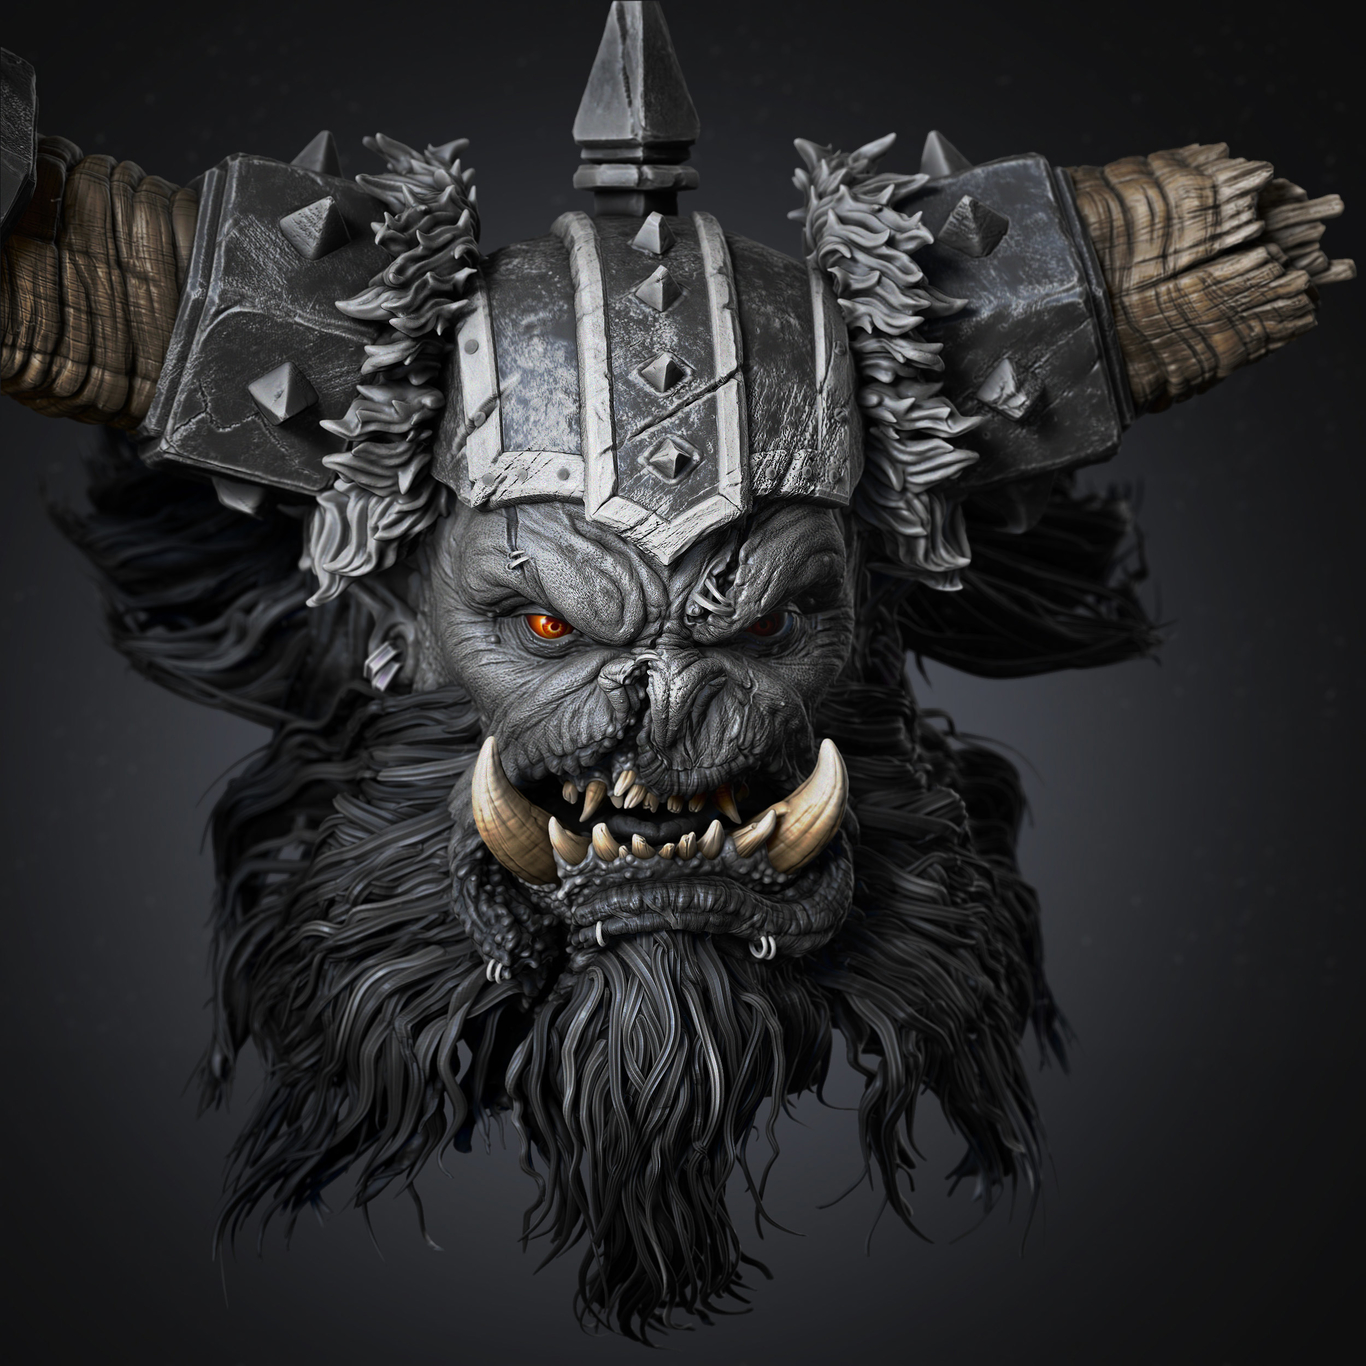 Fan Art Of Warcraft Orc By Harrygk Character Art 3d Cgsociety